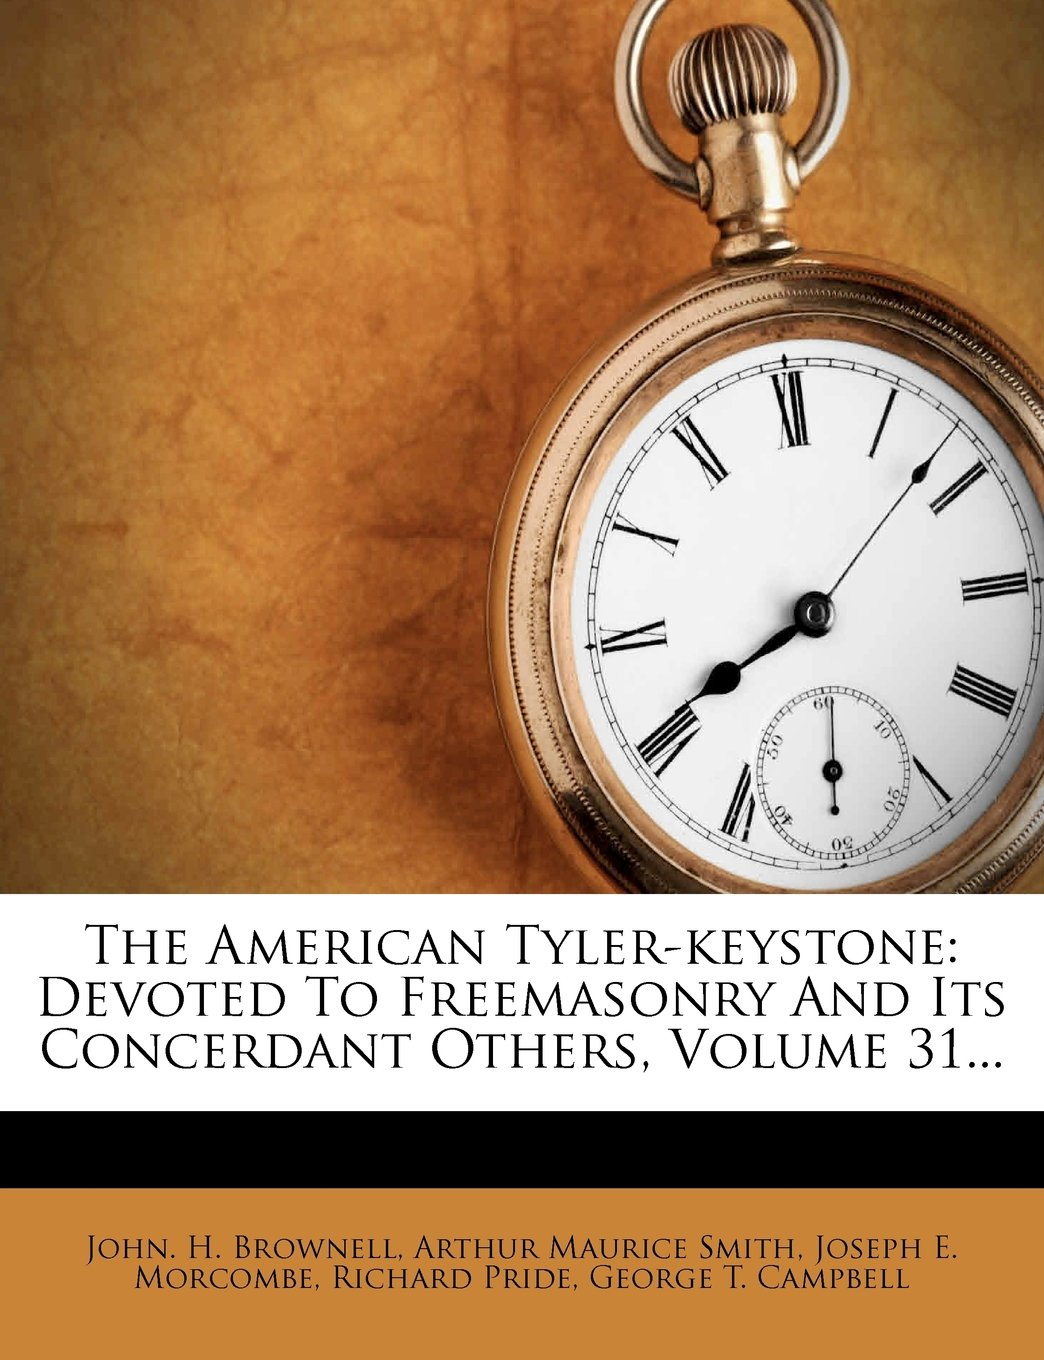 Read Online The American Tyler-keystone: Devoted To Freemasonry And Its Concerdant Others, Volume 31... PDF